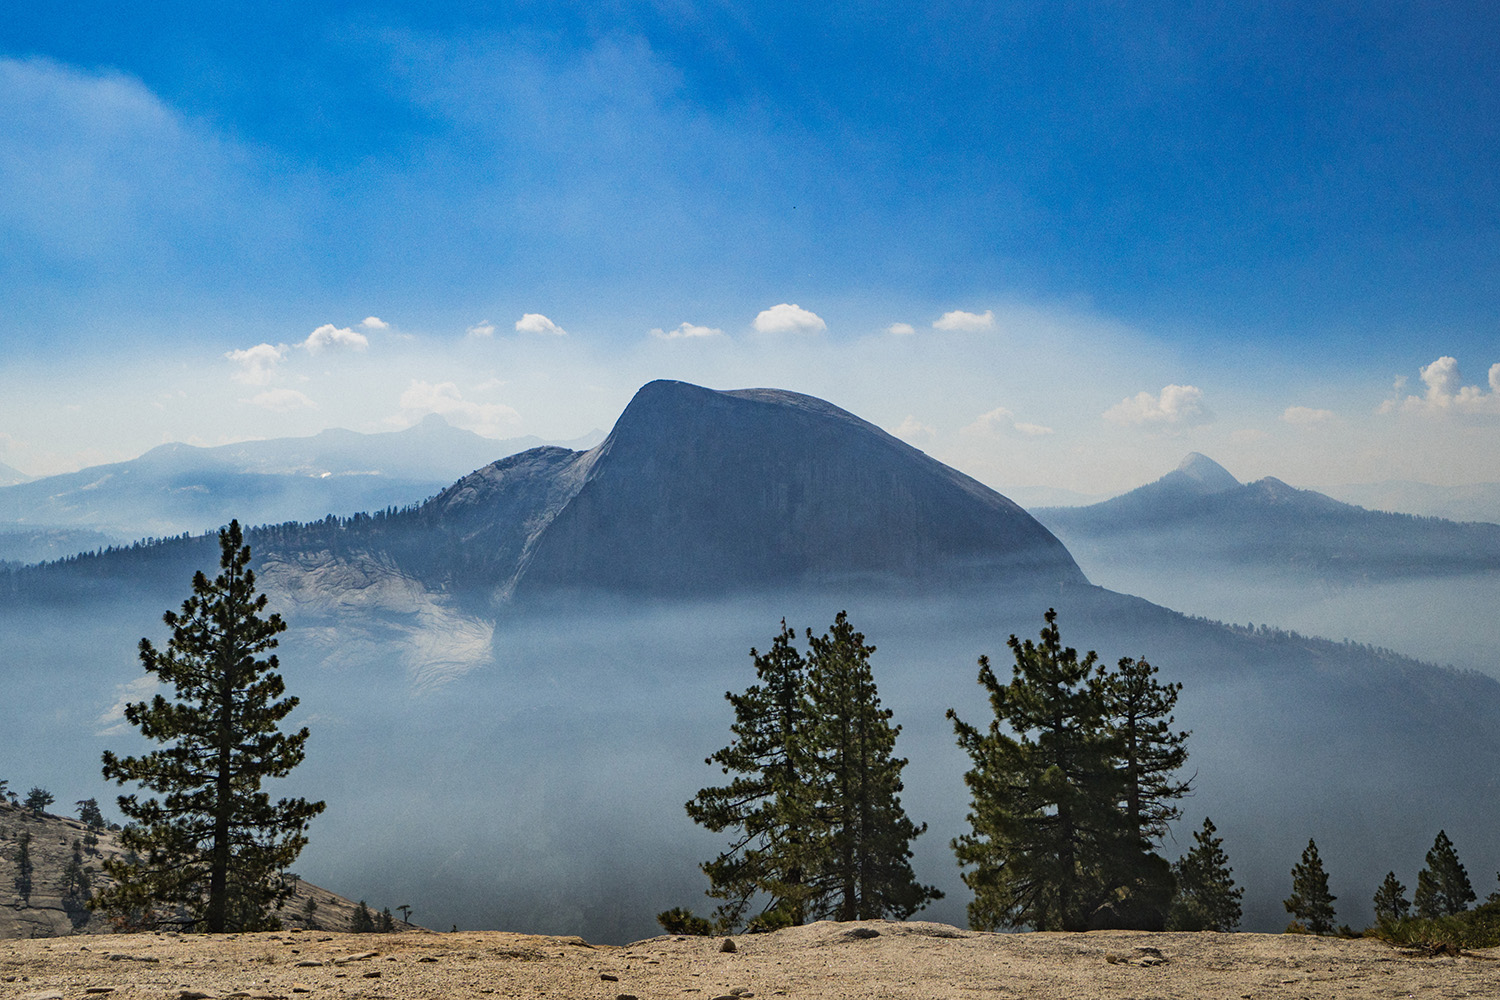 boldly-curious-yosemite-north-rim-day3-half-dome-smoke.jpg